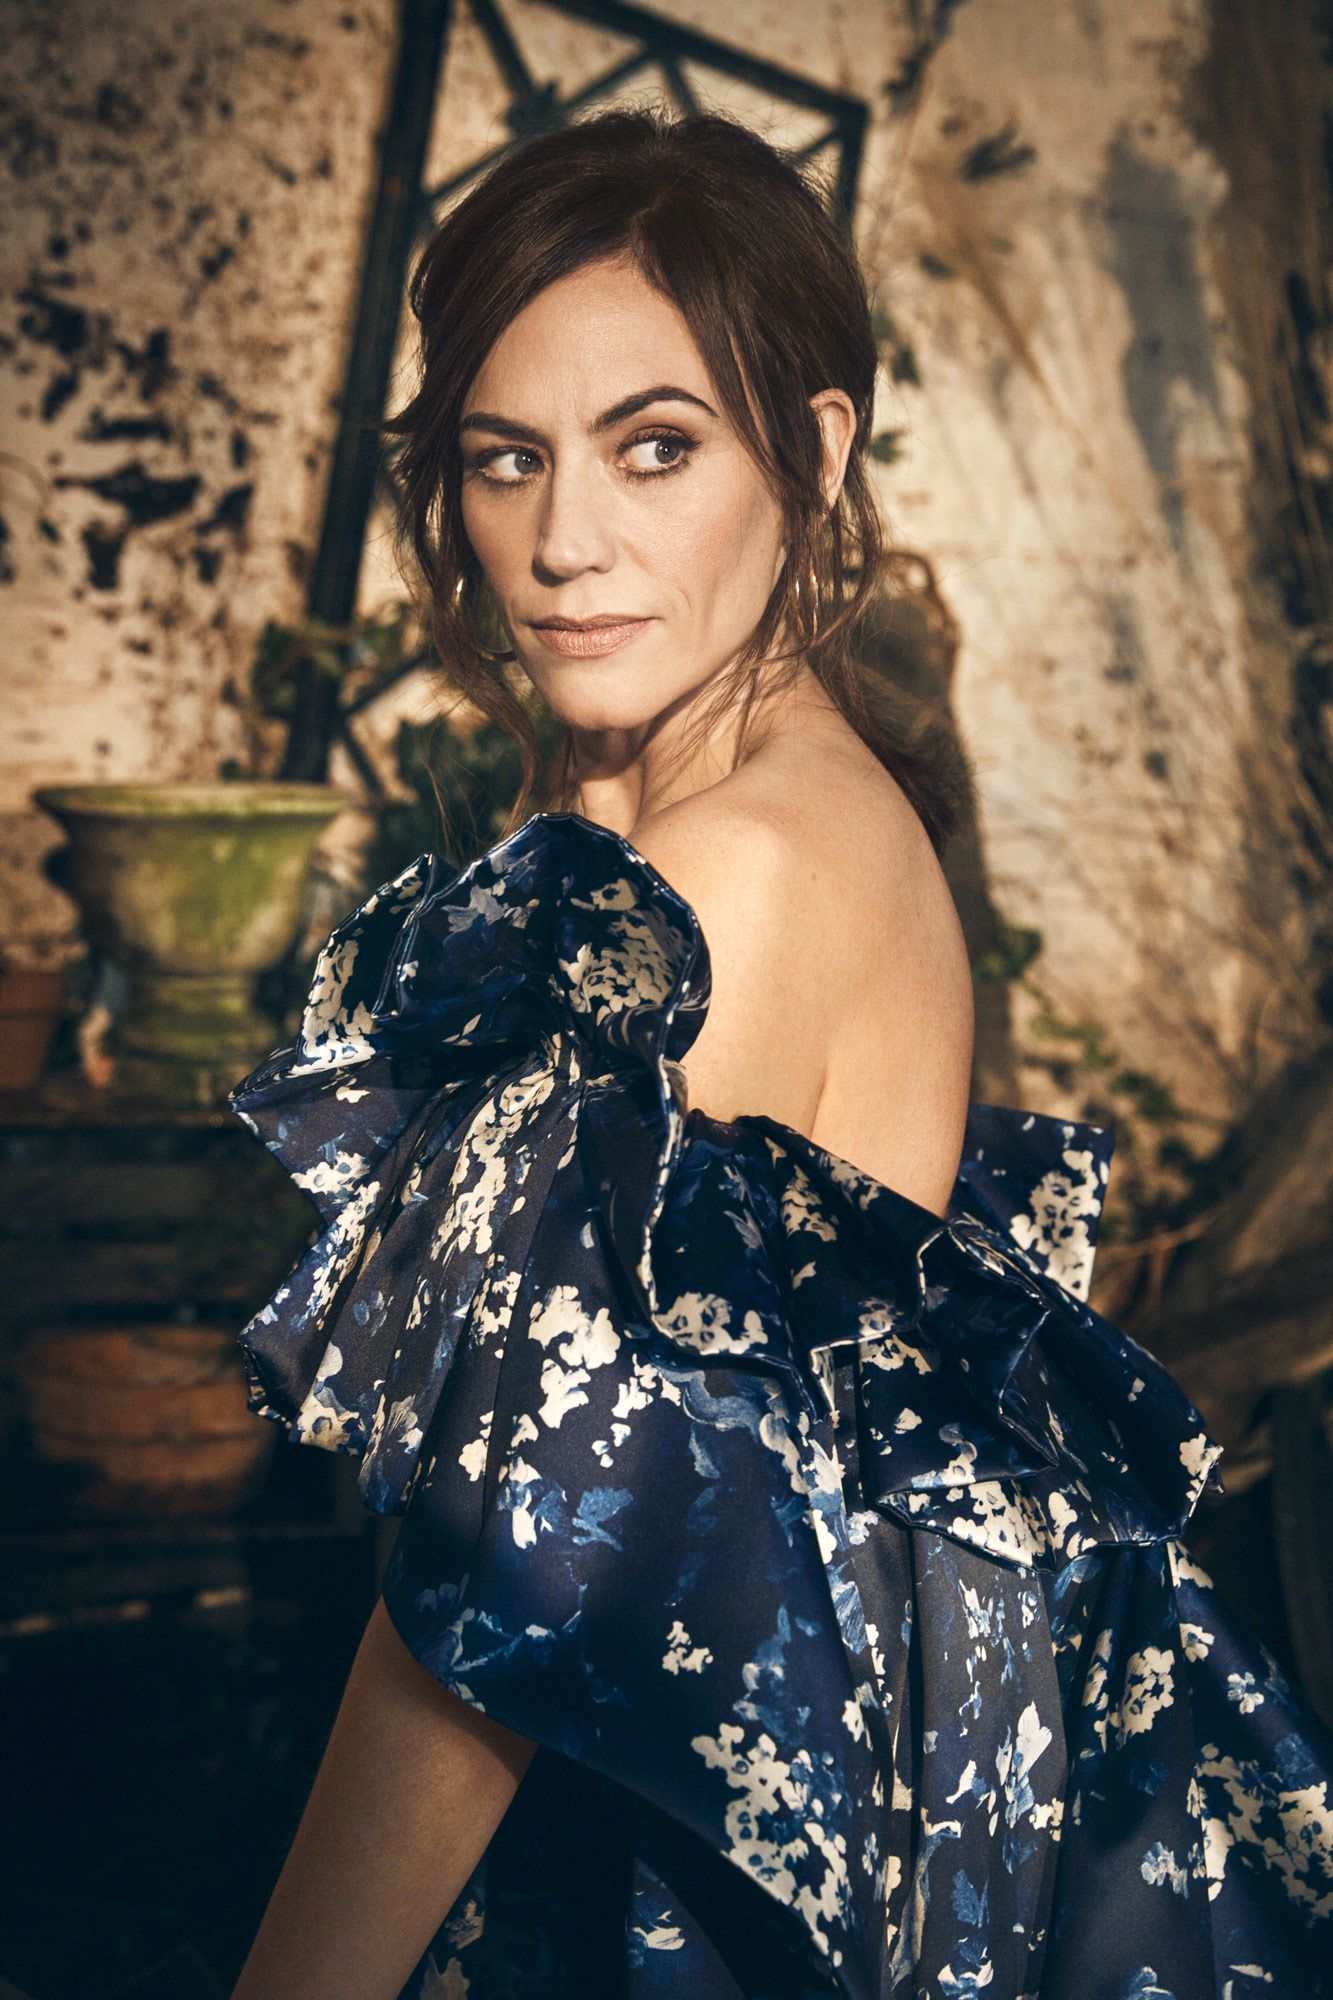 Maggie Siff in a blue floral gown.